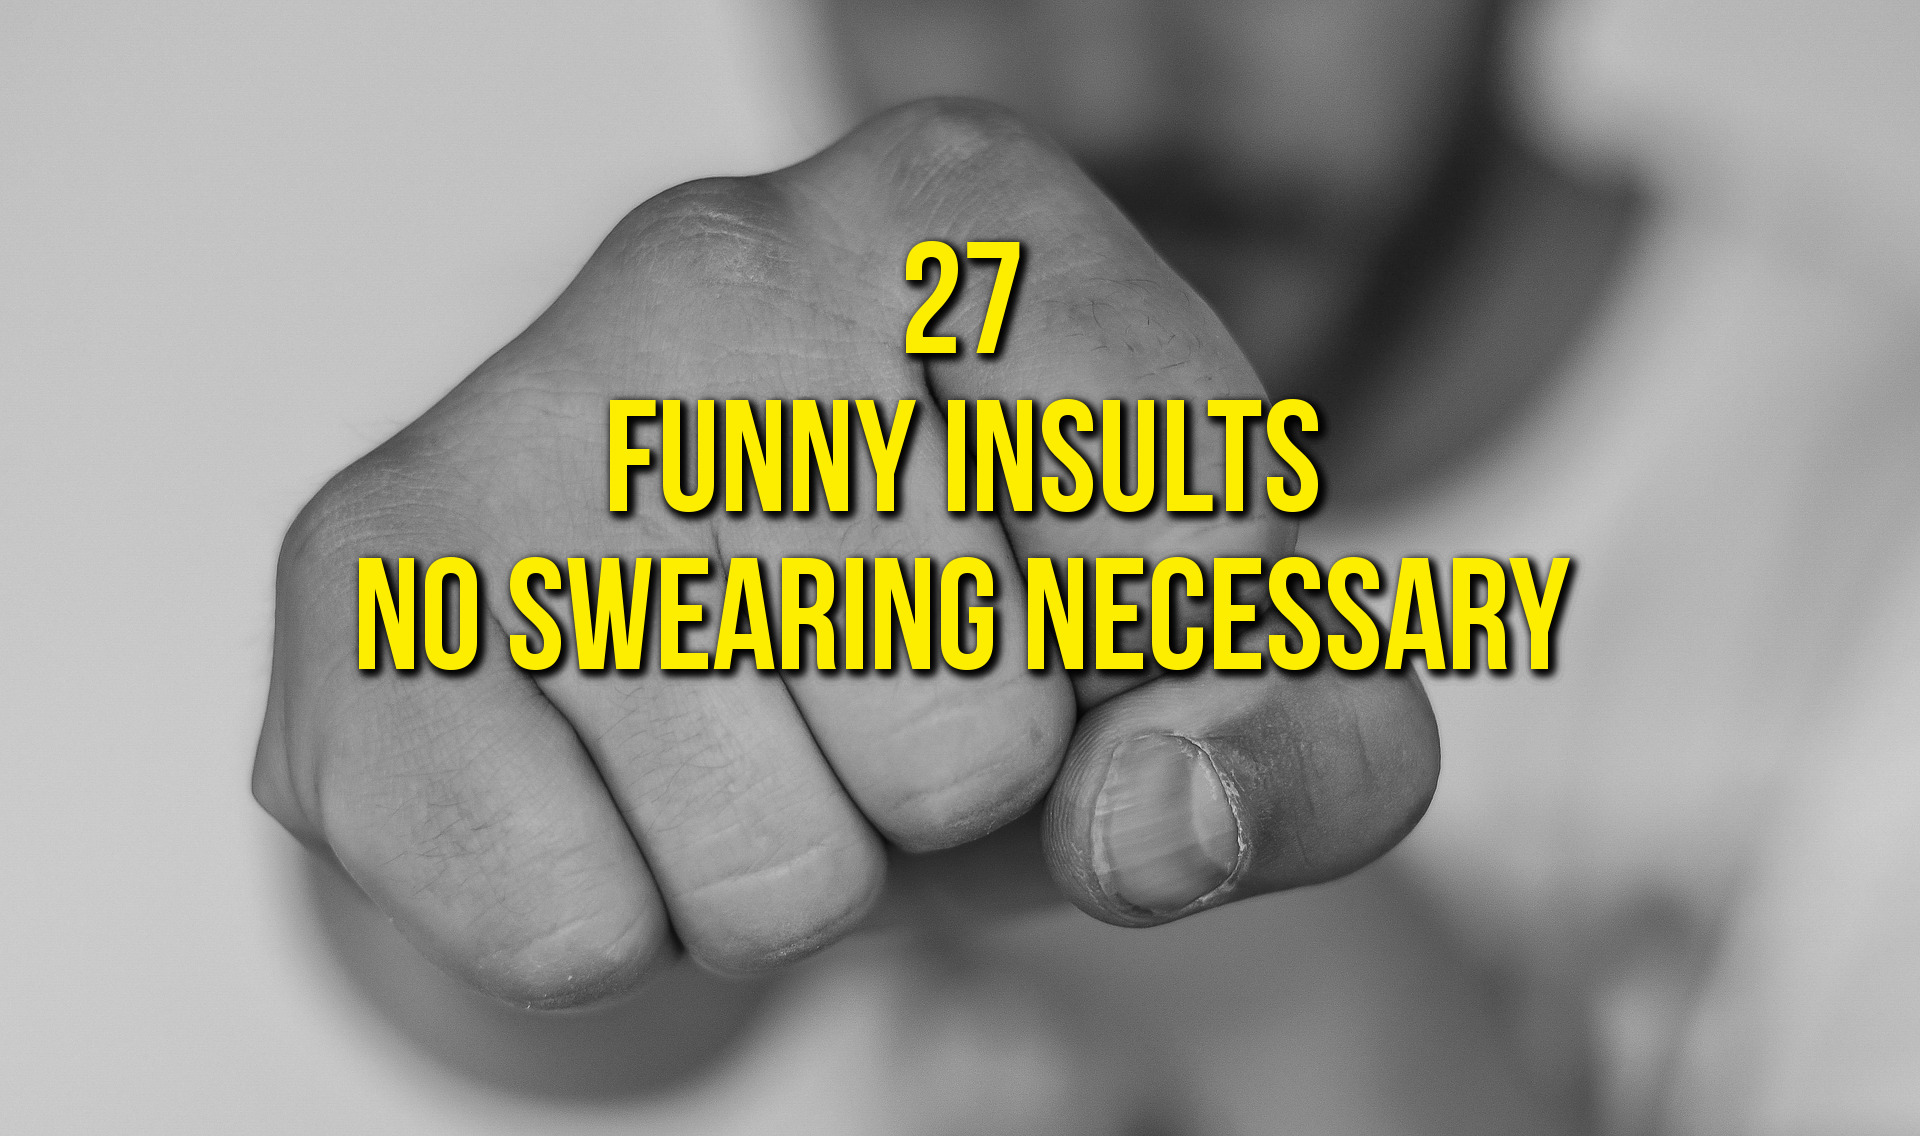 Funny Insults Without Needing To Swear - Infinite Articles